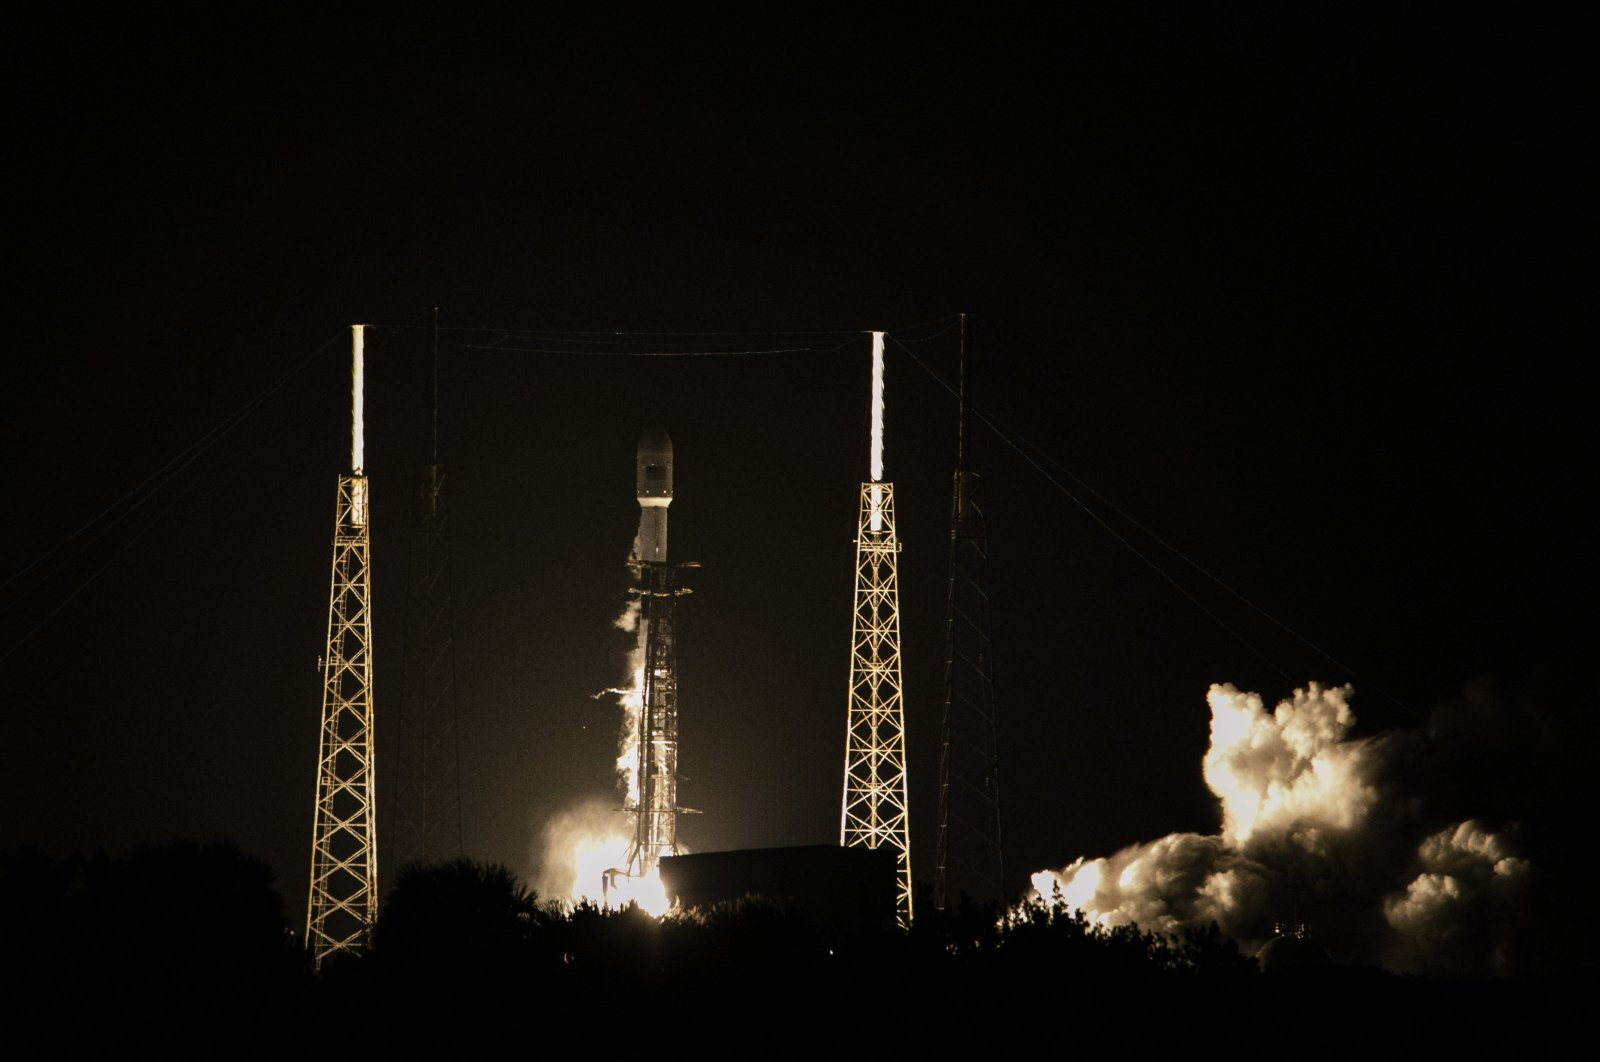 Turkey's new satellite Türksat 5A, carried by a SpaceX Falcon 9 rocket, launches from Cape Canaveral Space Force Station, in Cape Canaveral, Florida, U.S., Jan. 7, 2020. (AA Photo)